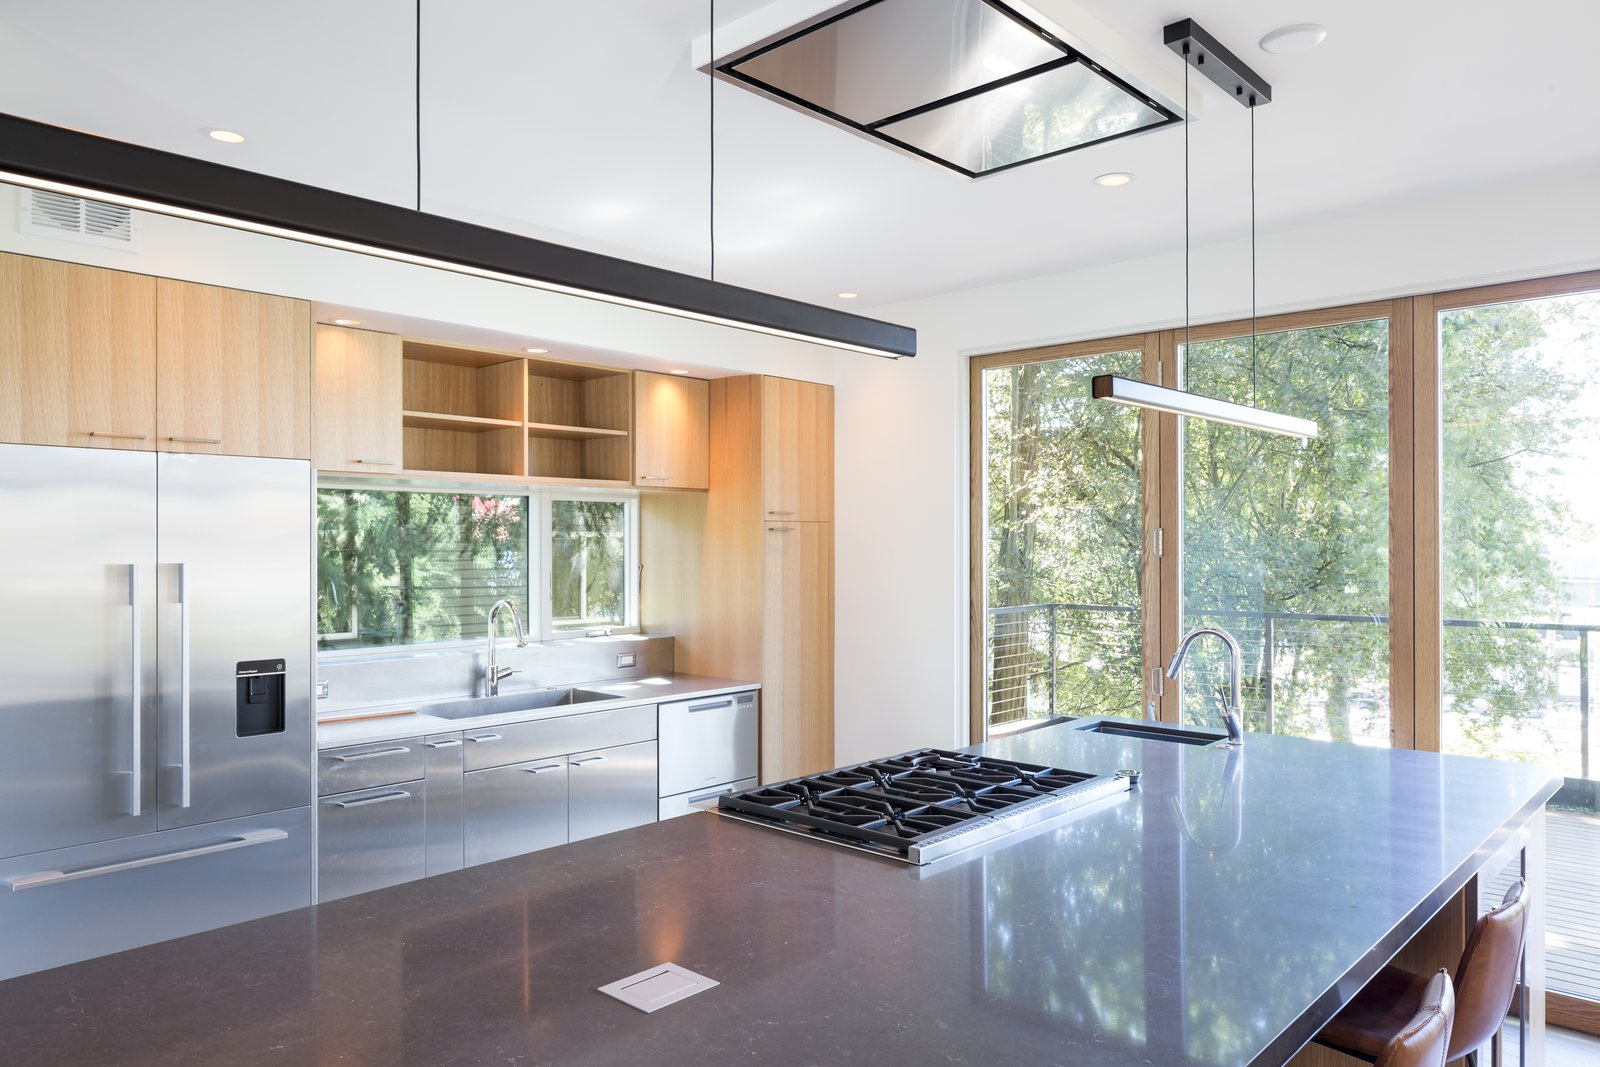 Kitchen, Engineered Quartz Counter, Wood Cabinet, Light Hardwood Floor, Ceiling Lighting, Pendant Lighting, Refrigerator, Range, Range Hood, Dishwasher, Beverage Center, and Undermount Sink  Contemporary Home With Chef's Kitchen by Model Remodel